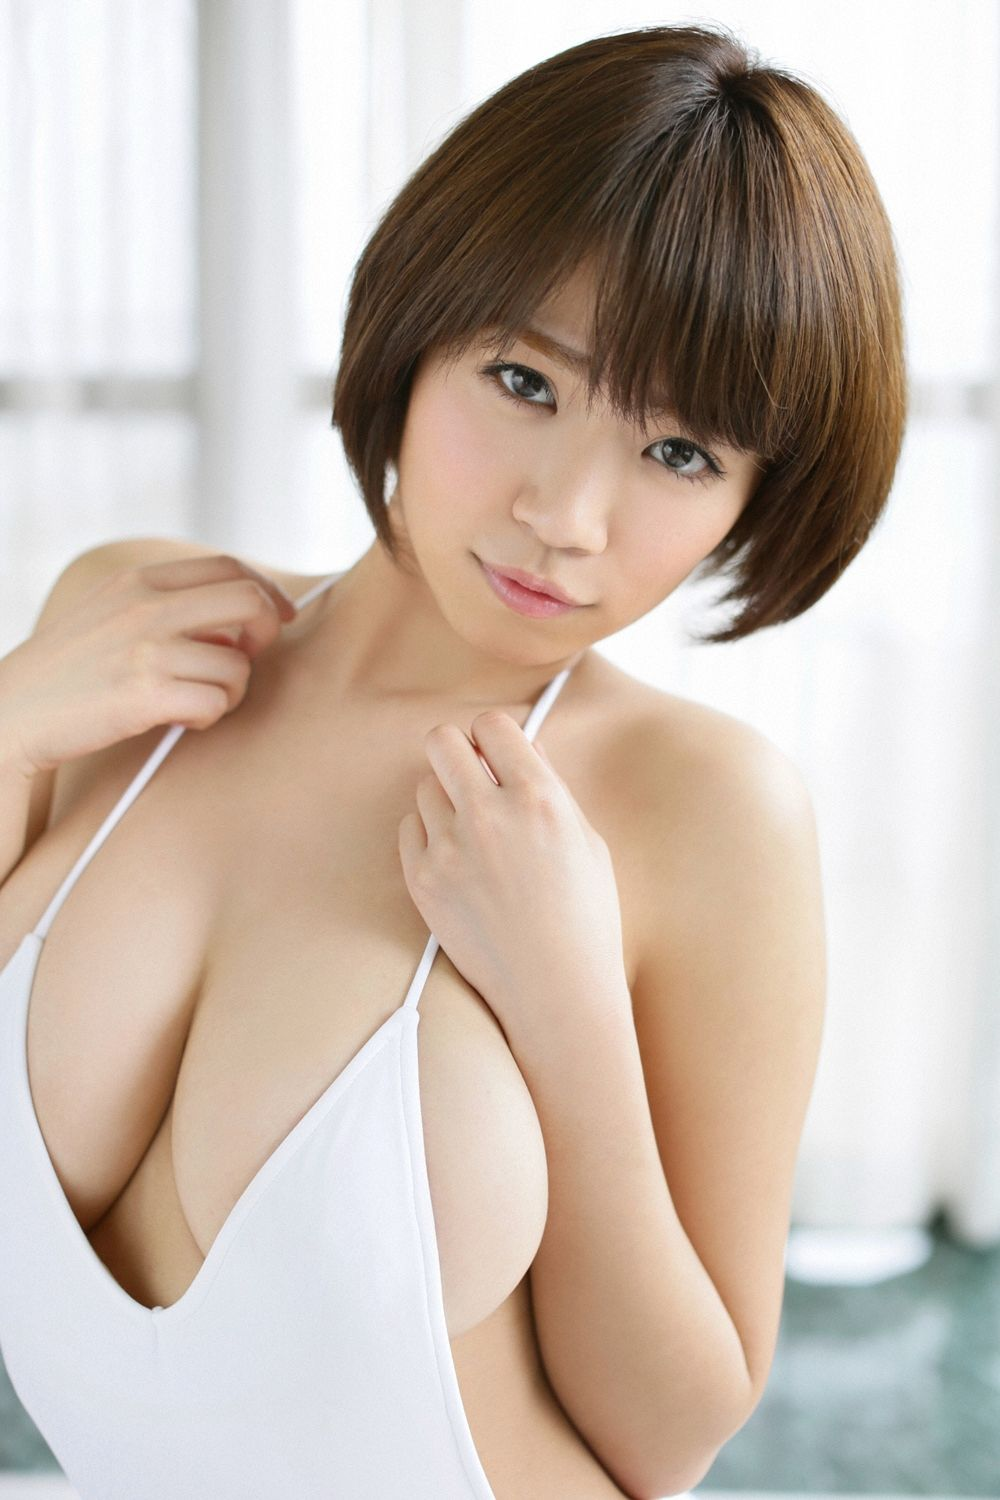 japanese amateur private nude shot Nanoka Nanoka